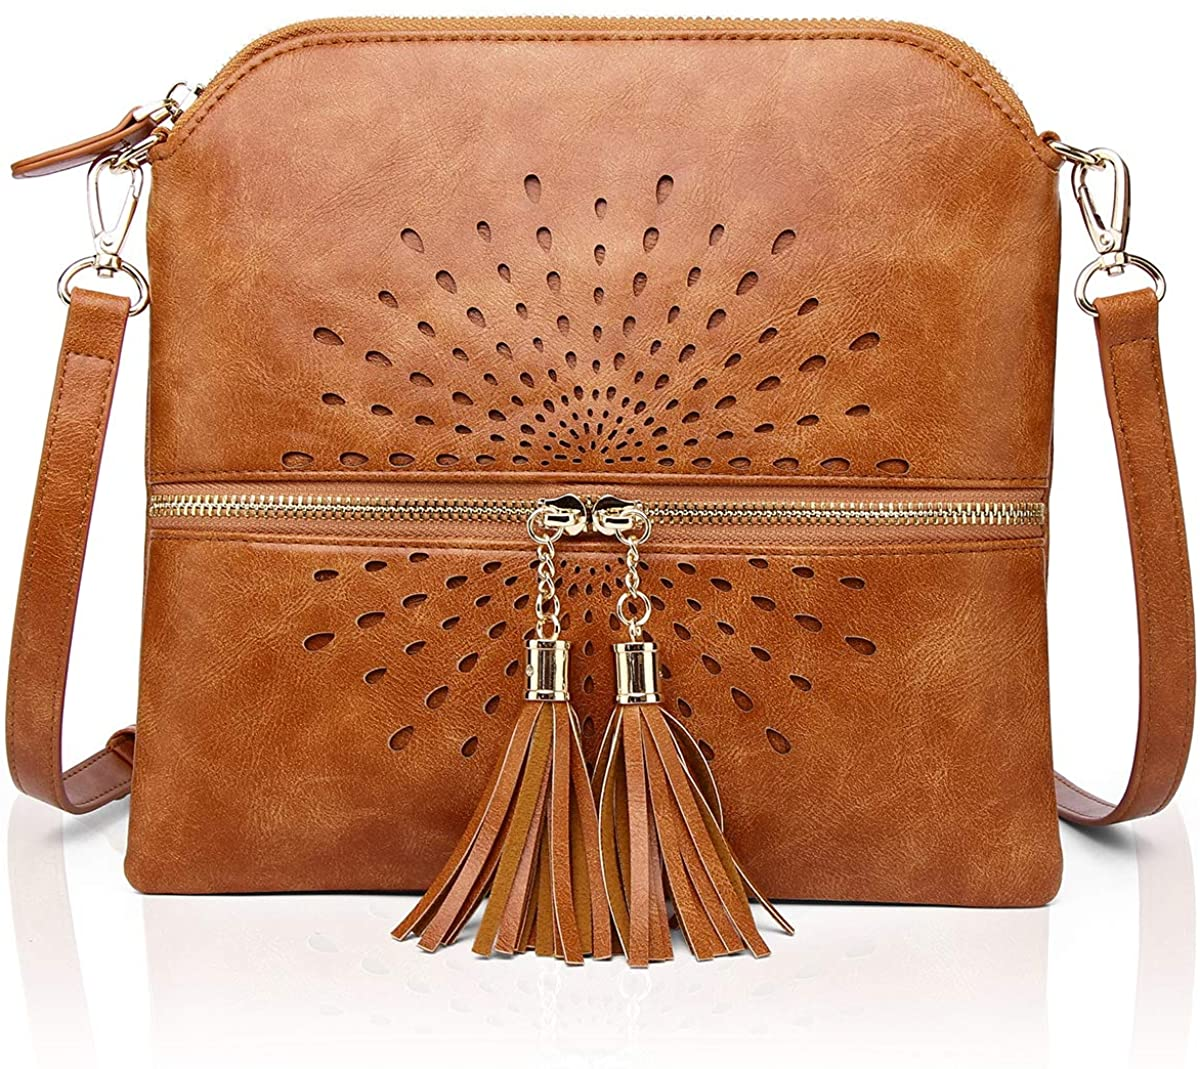 APHISON Womens Crossbody Bags PU leather sun flower styles Shoulder Bag with Tassel Purse T1937